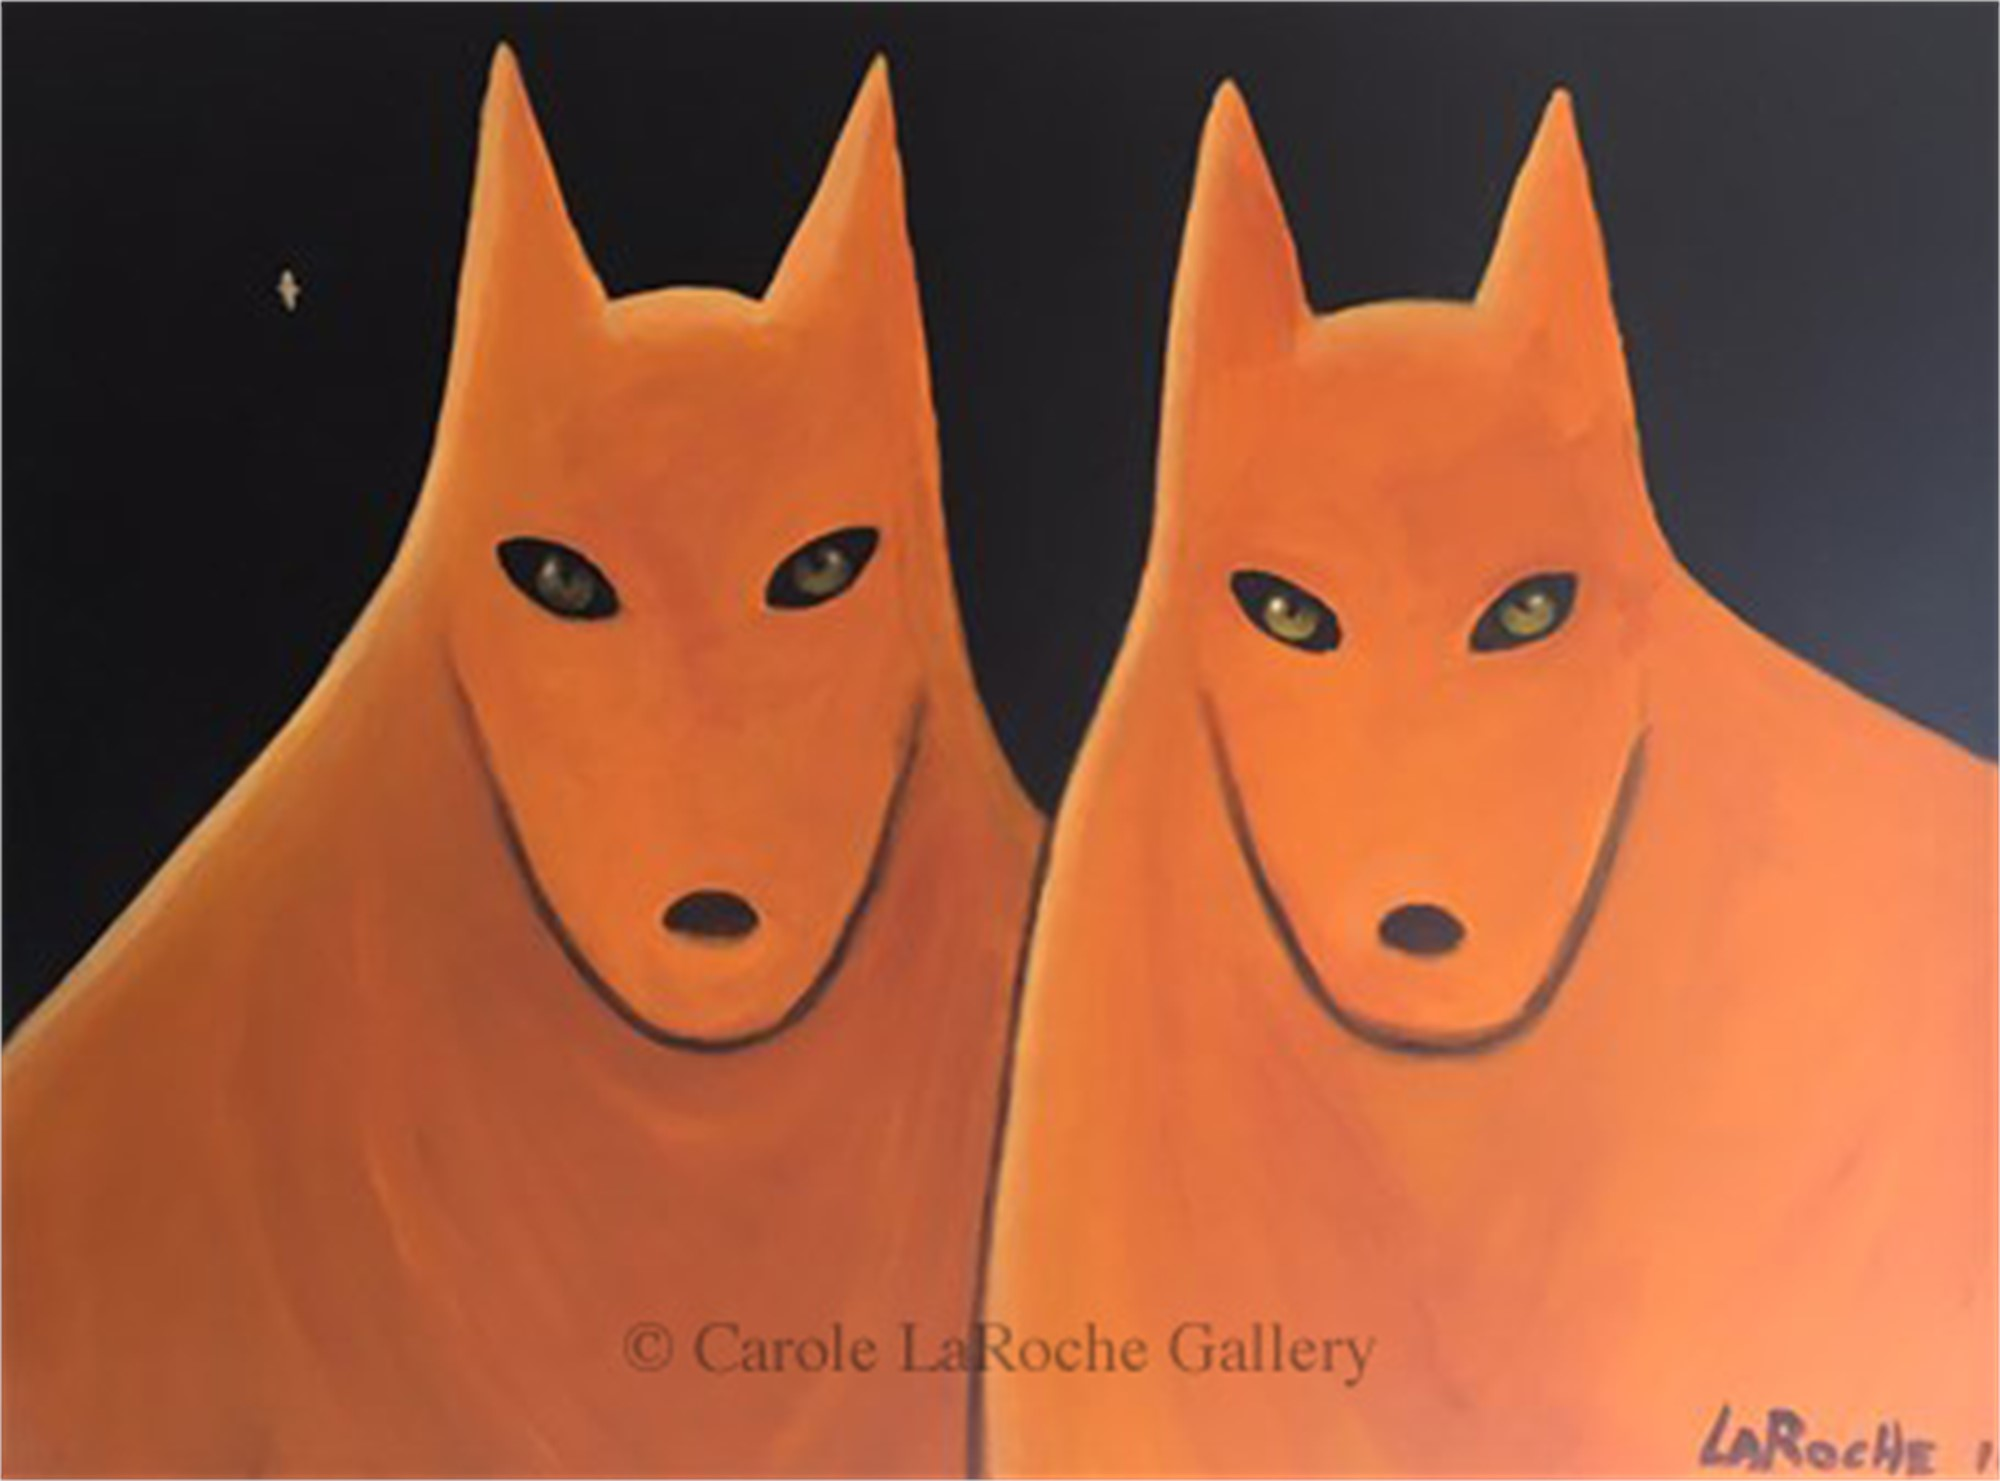 STAR-CROSSED SOULMATES -  From Carole's Private Collection by Carole LaRoche